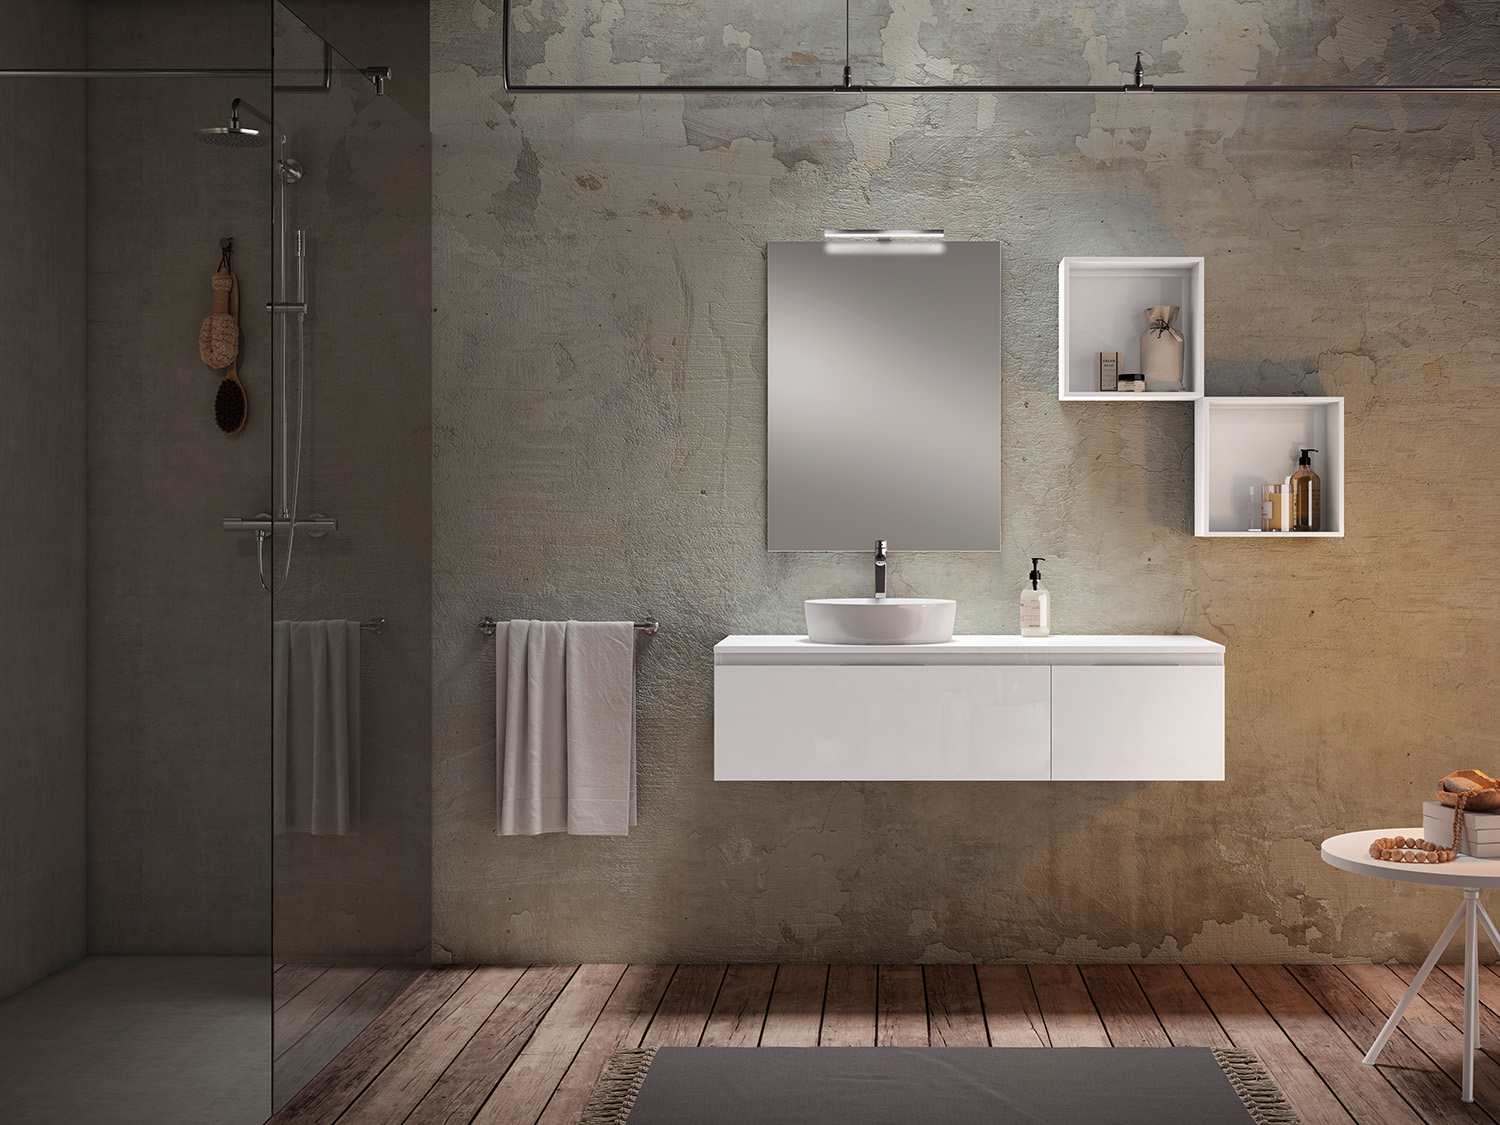 Mueble de baño MOD. PLAY color BLANCO BRILLO